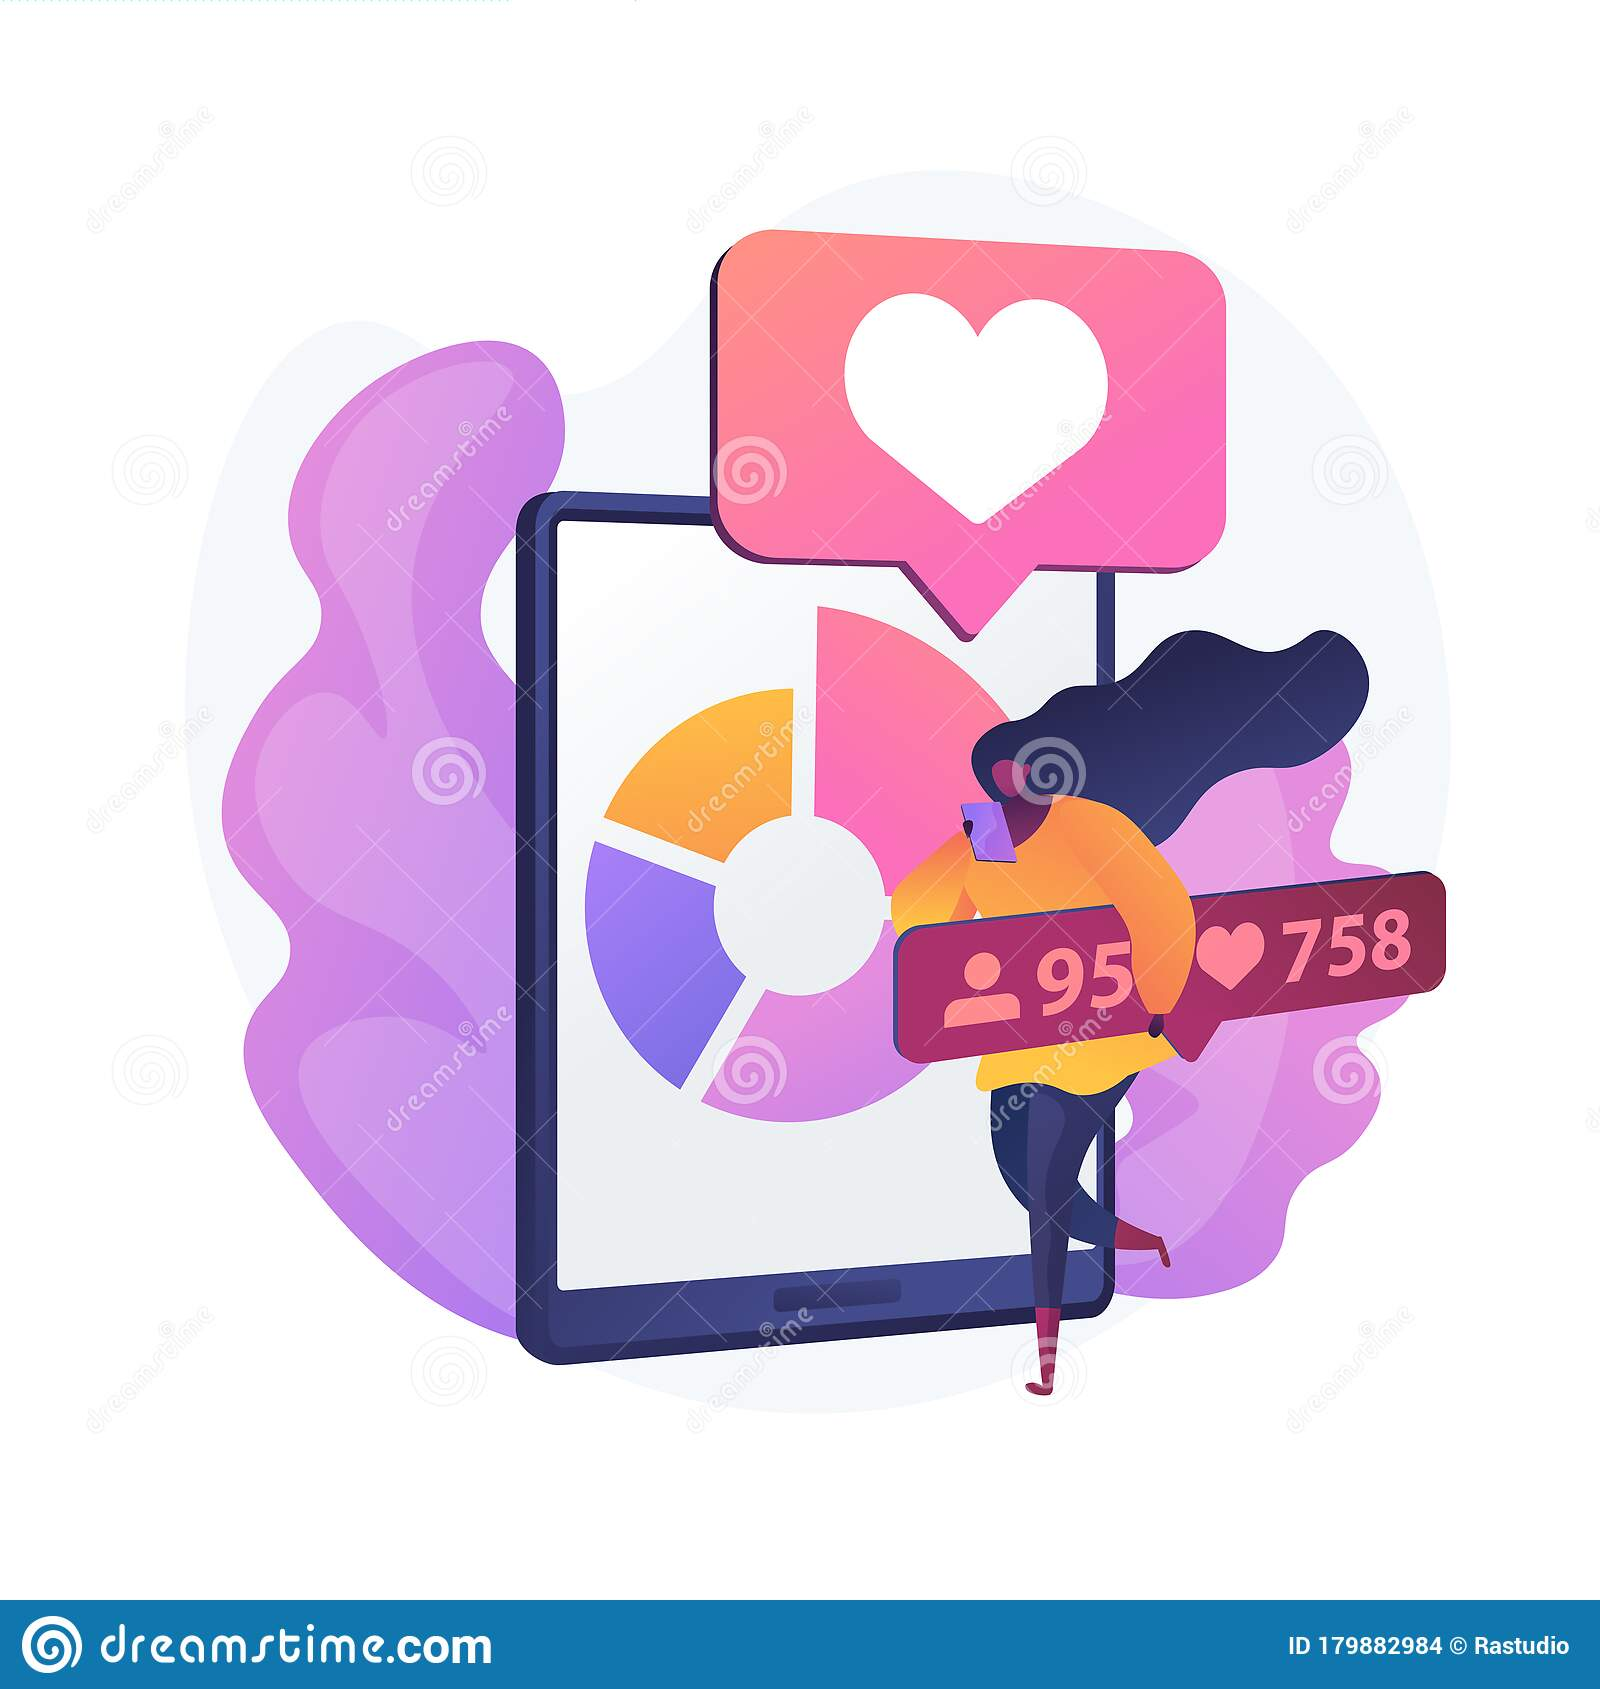 Social Media Blogging Marketing Vector Concept Metaphor Stock Vector Illustration Of Influencer Cartoon 179882984